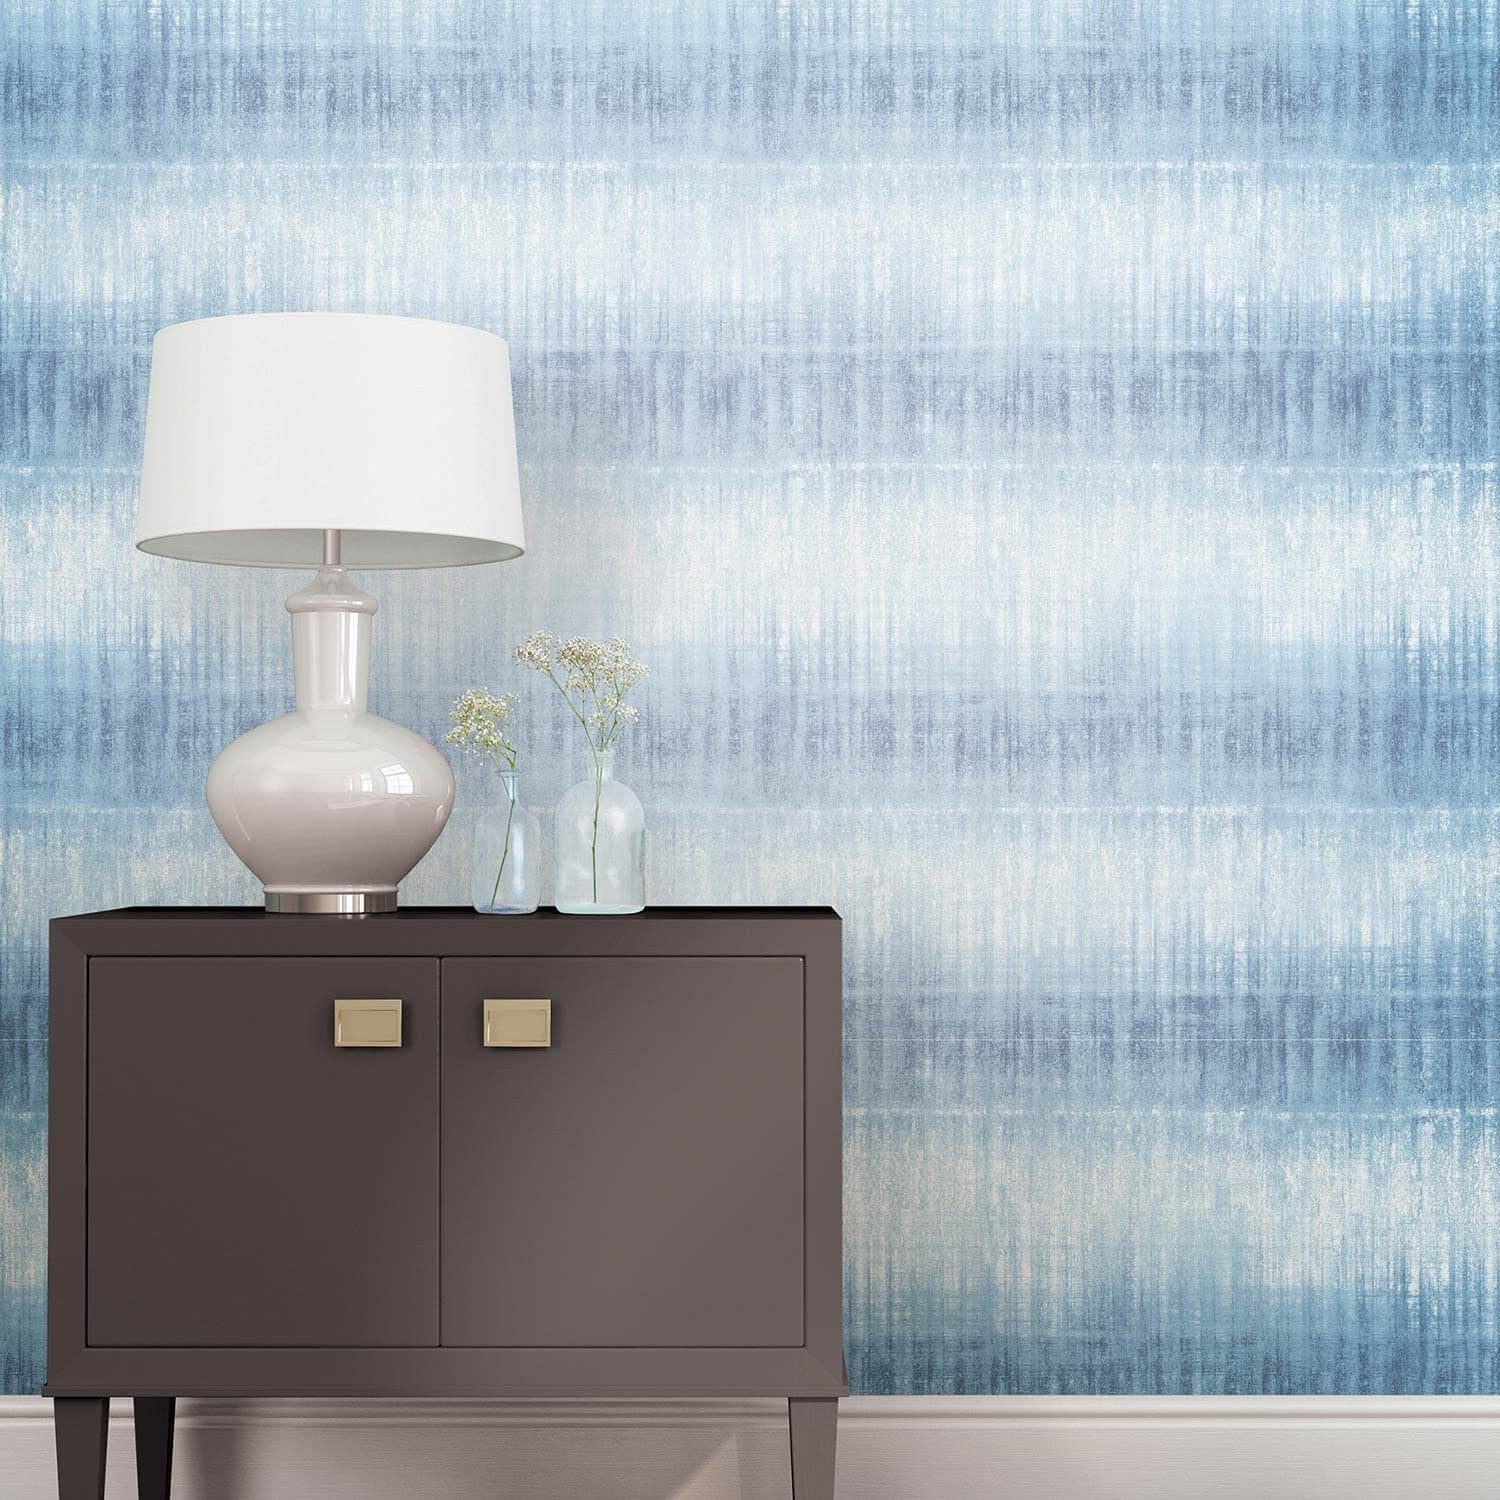 Peel and Stick Temporary Wall Paper - Tie Dye Stripe